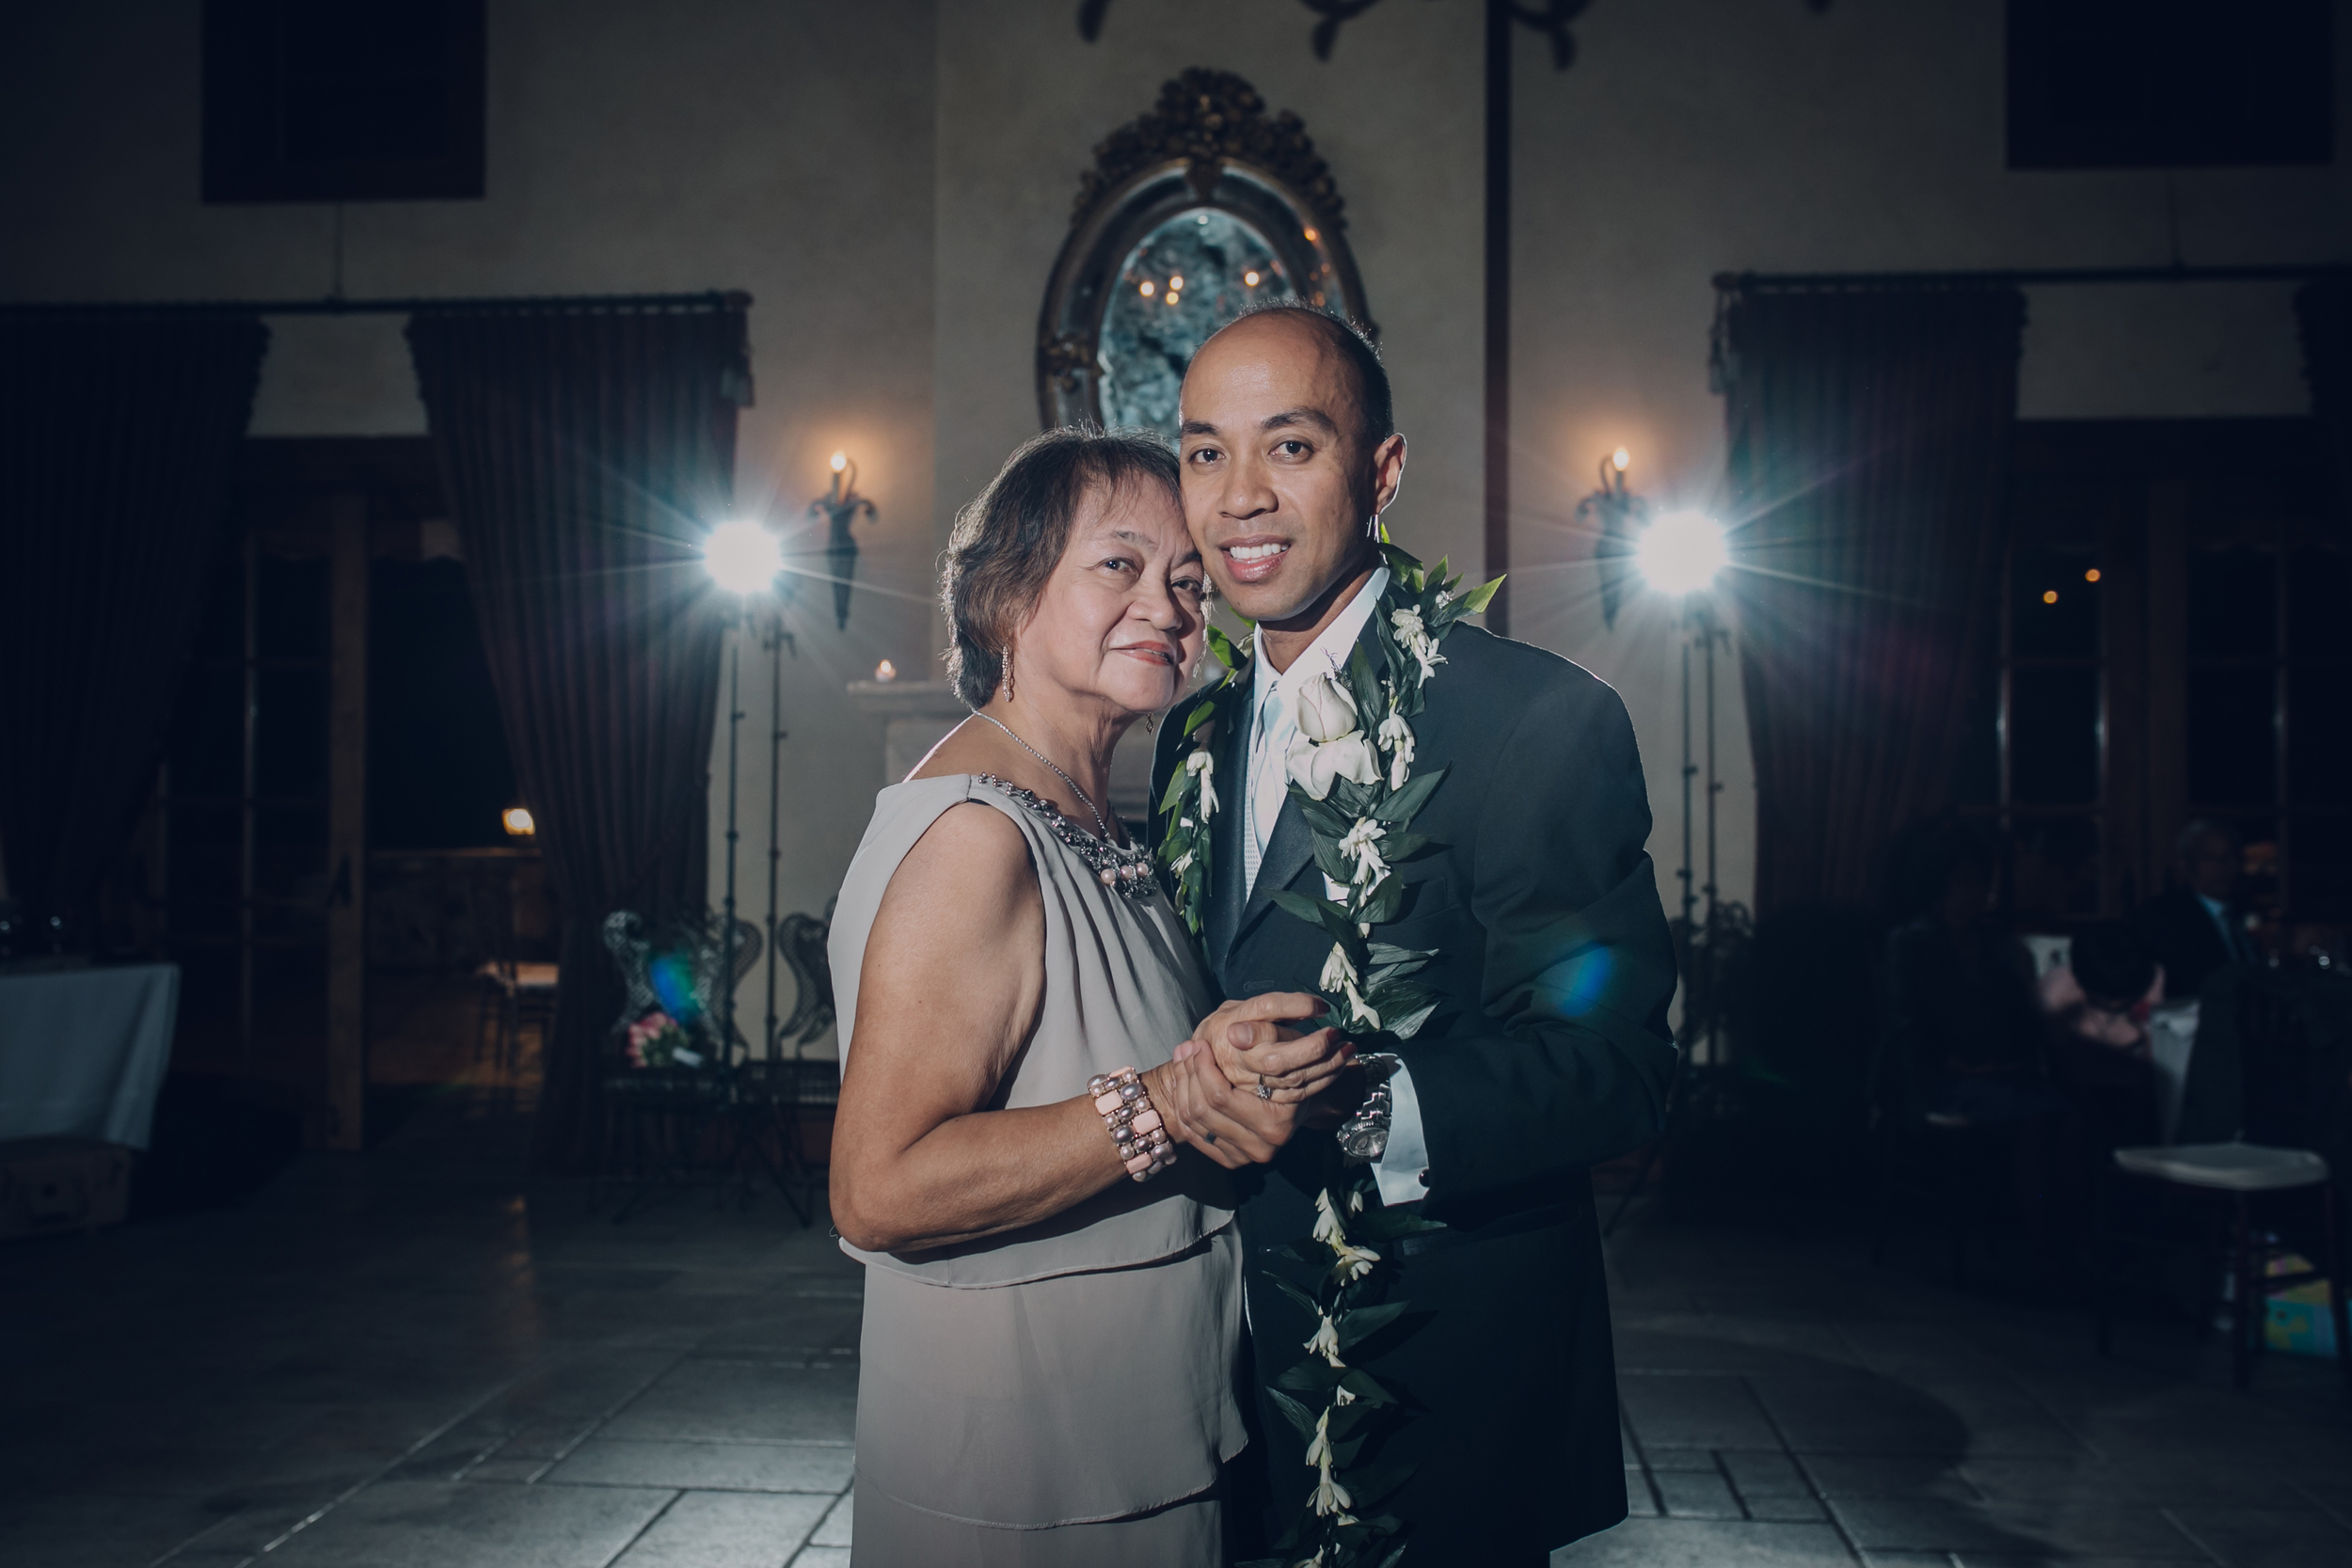 Shiela + Lester's Wedding 9-30-15 1161.jpg